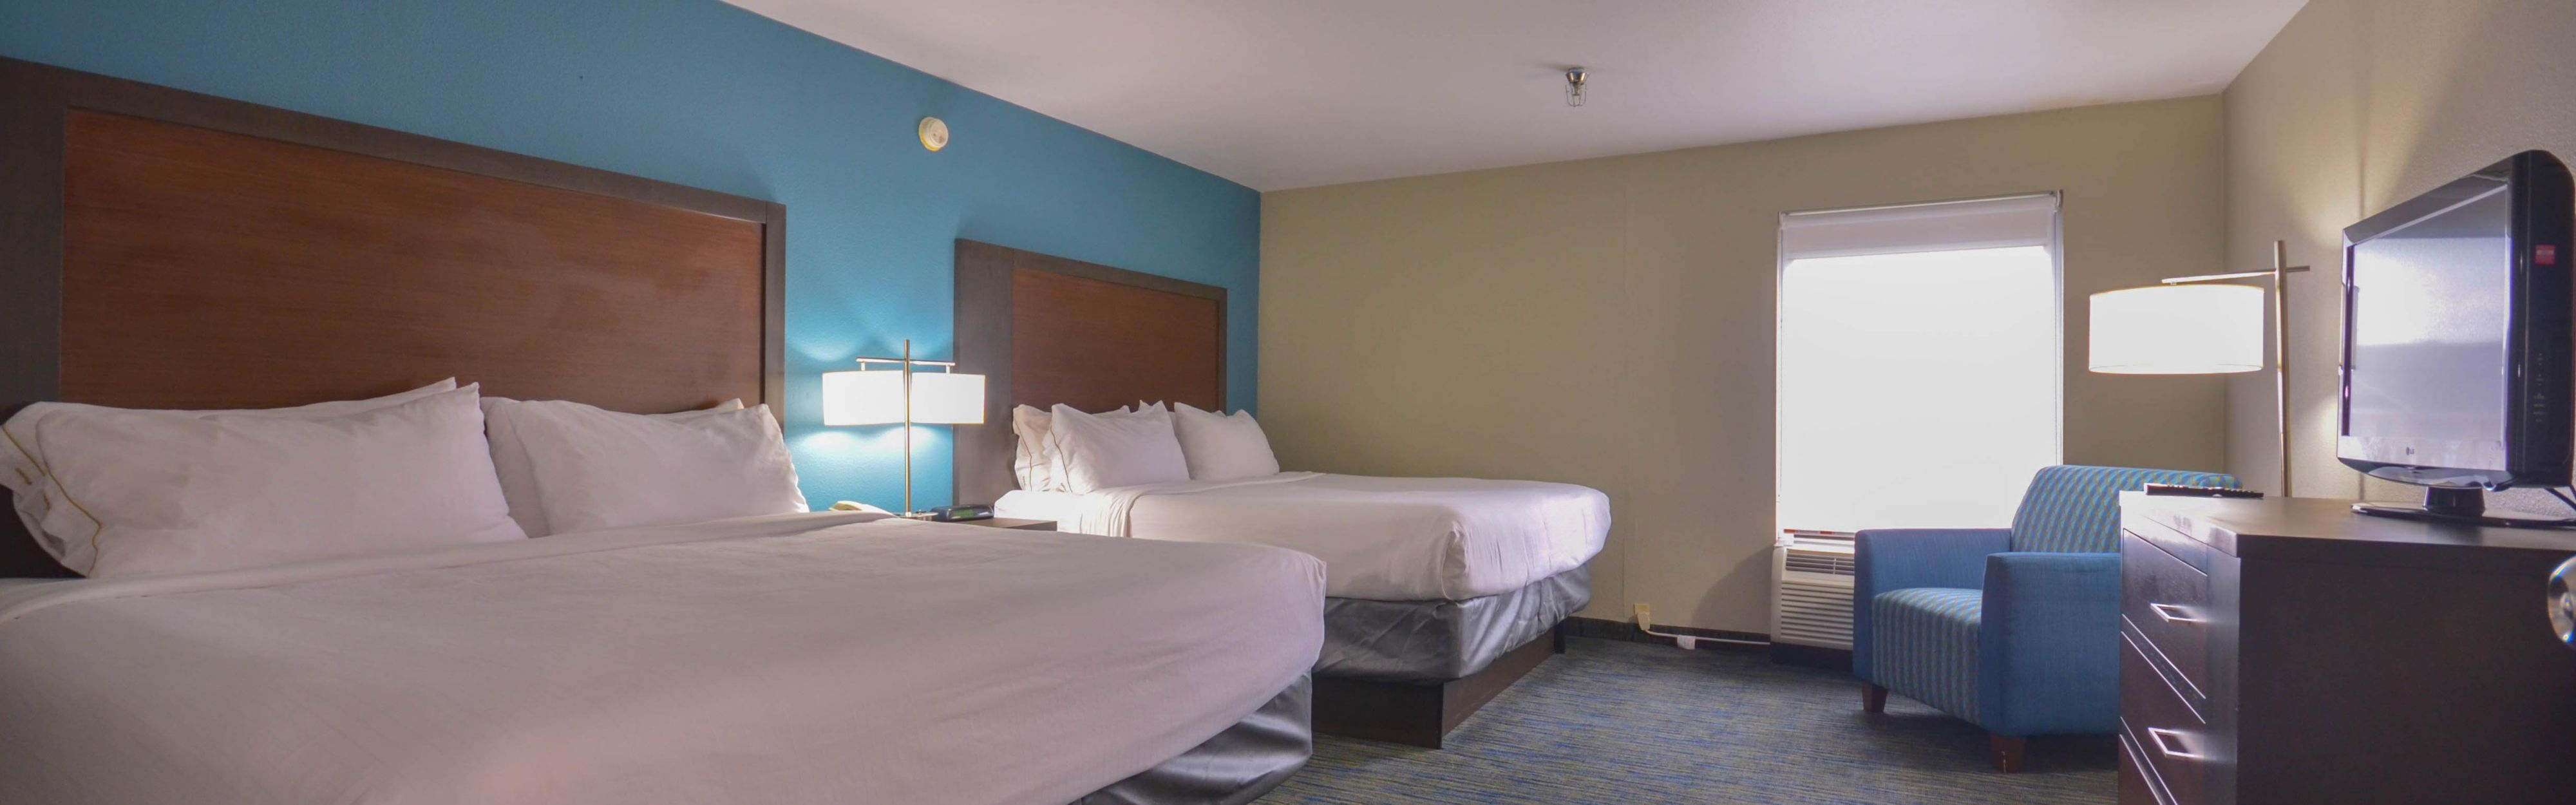 Holiday Inn Express & Suites Fayetteville-Univ Of Ar Area in Fayetteville, AR, photo #3